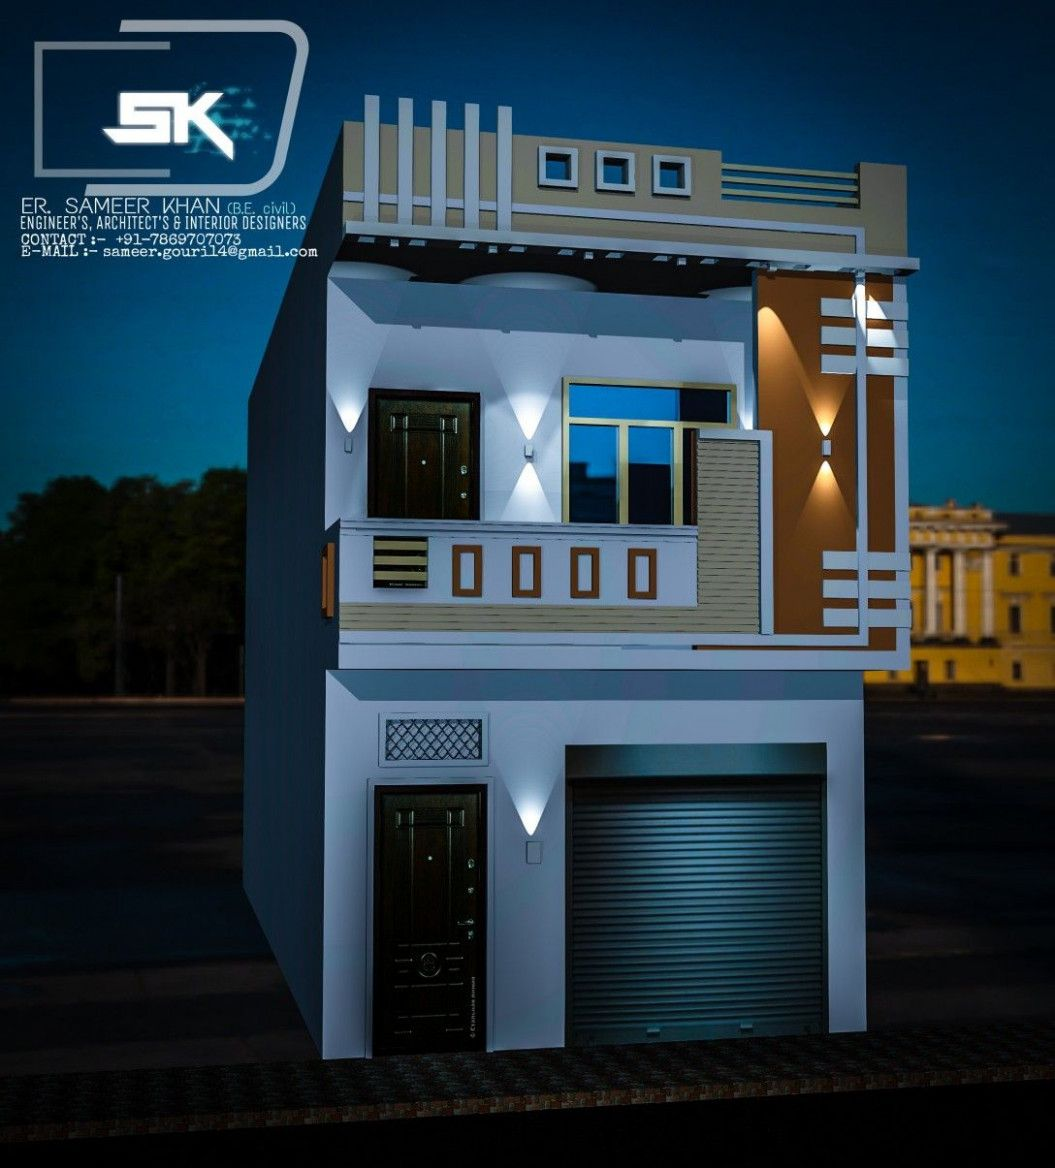 Introducing Indian House Exterior Elevation With Shop. In